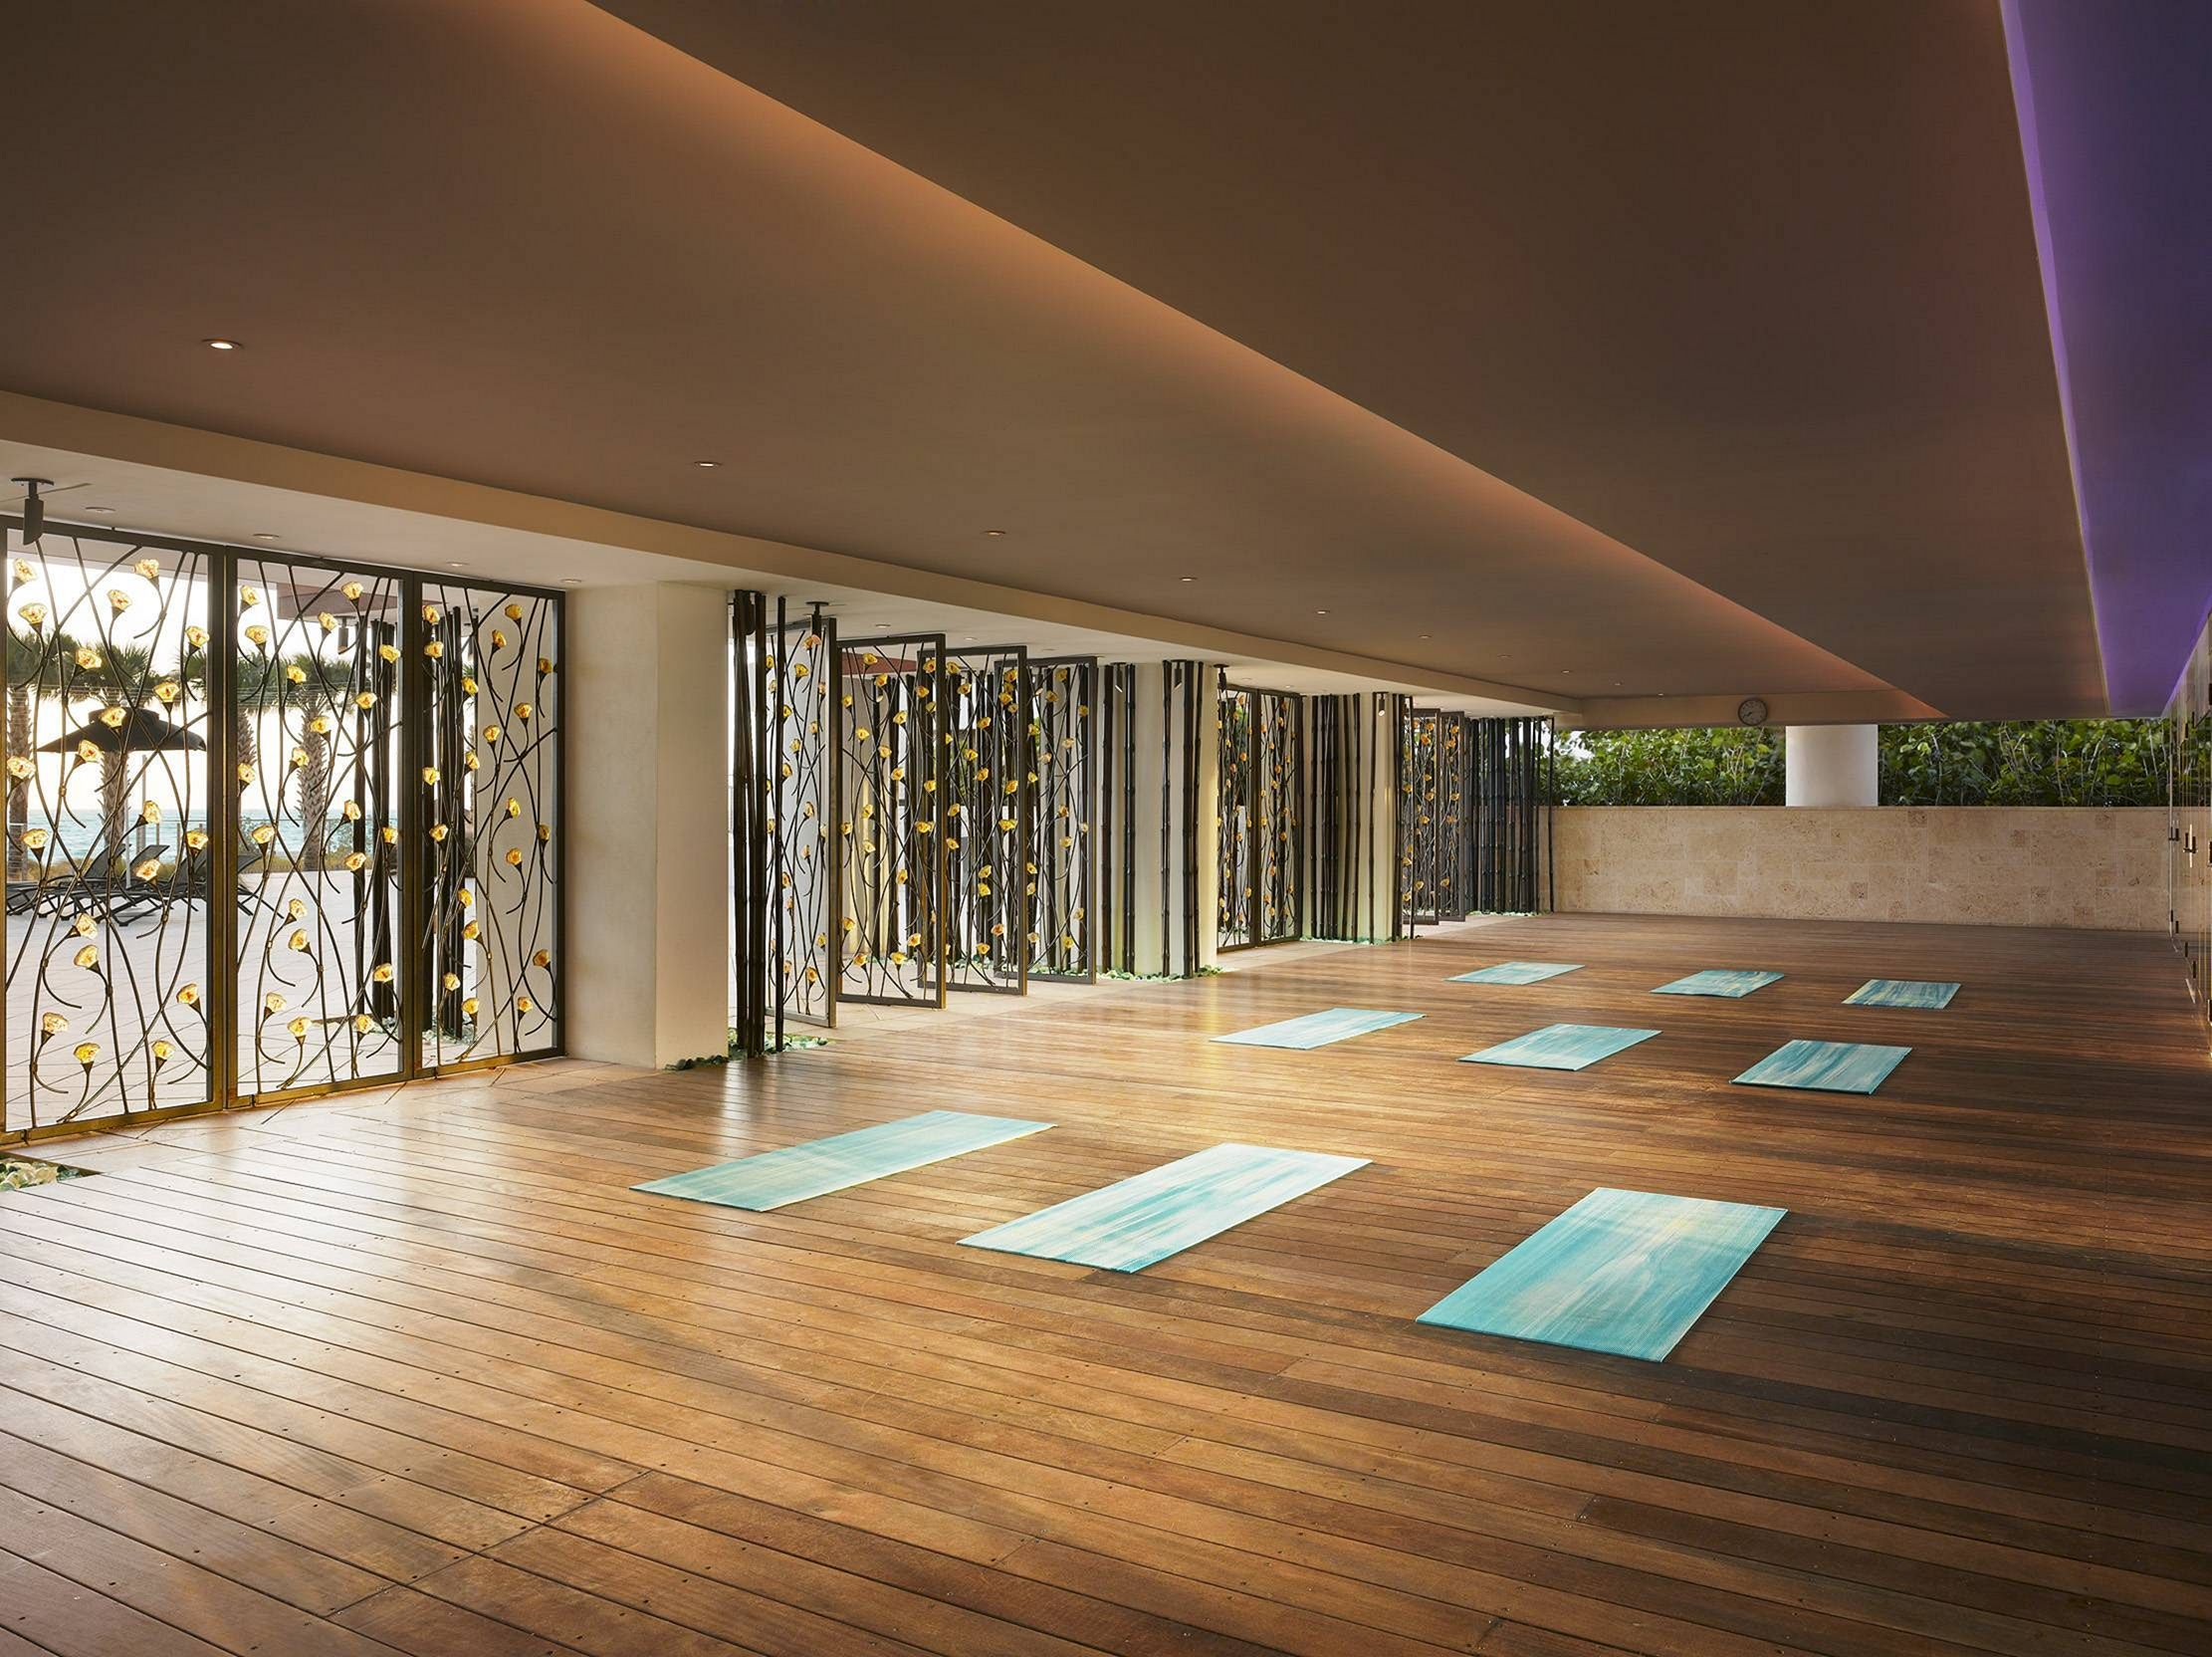 Flawless 20 Best Yoga Studio Design Ideas For Exciting Exercises ...